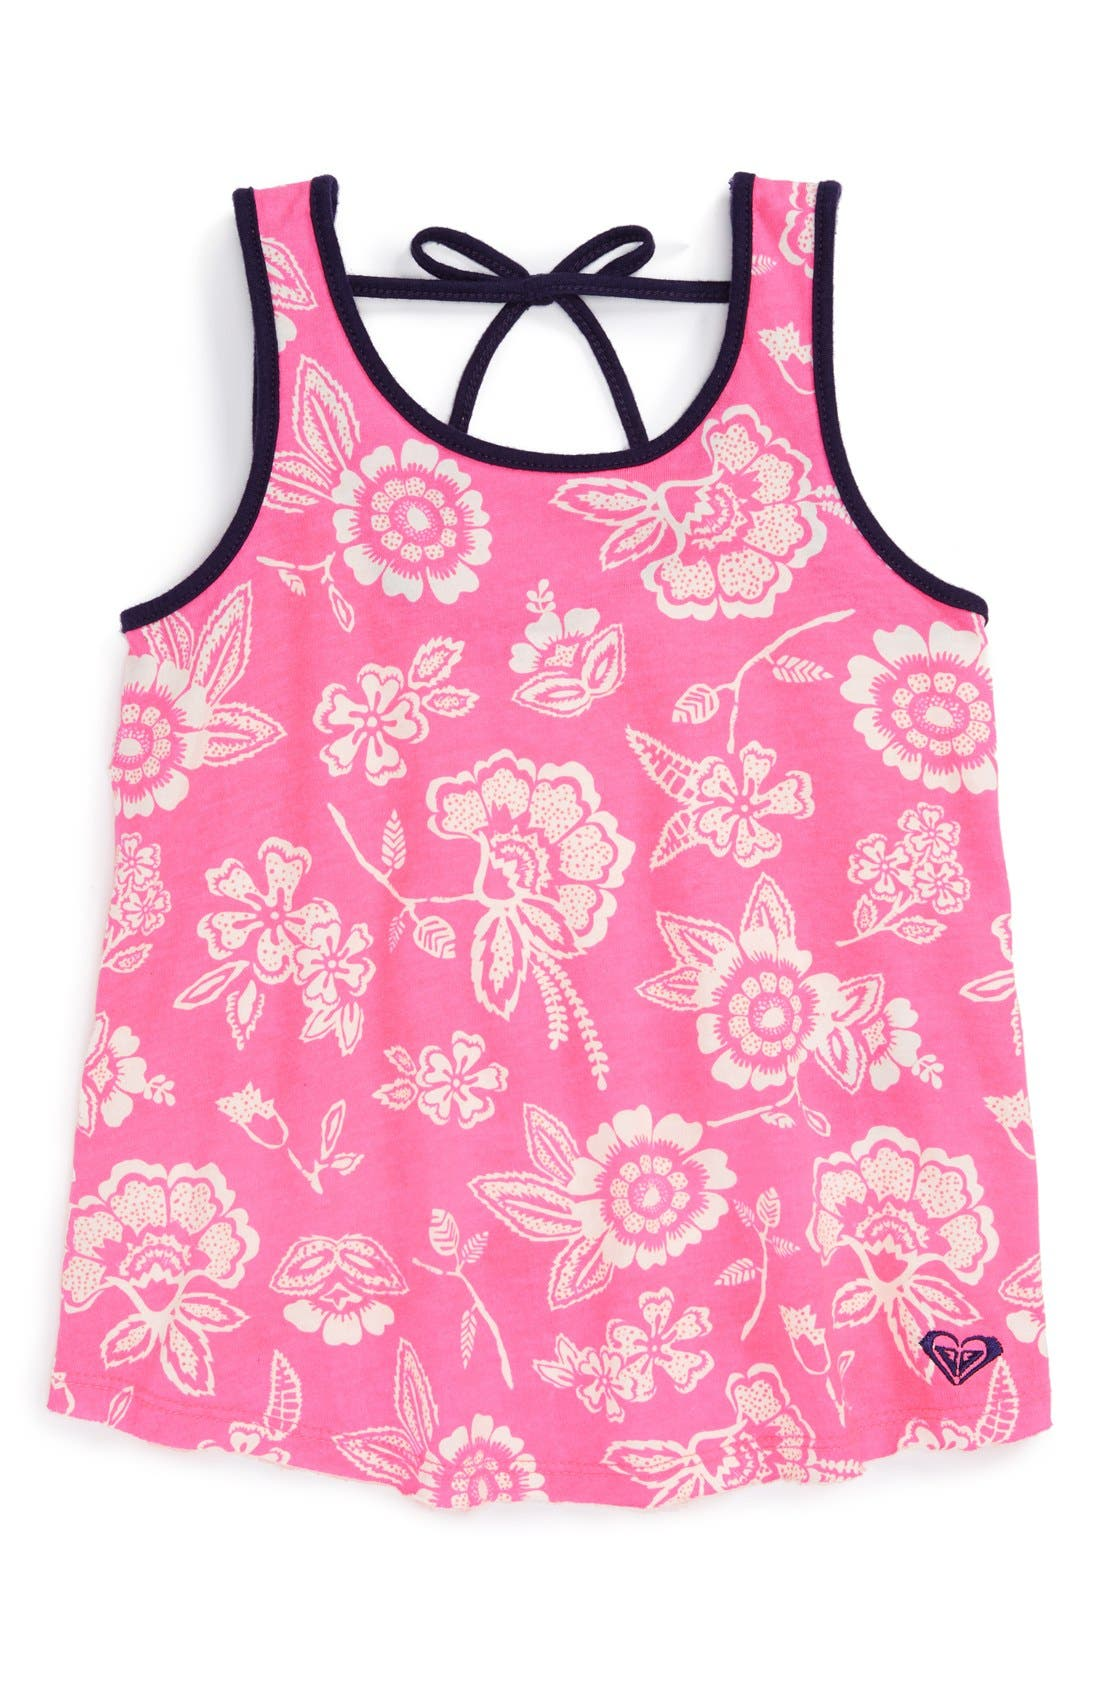 Main Image - Roxy 'Clear View' Sleeveless Top (Toddler Girls)